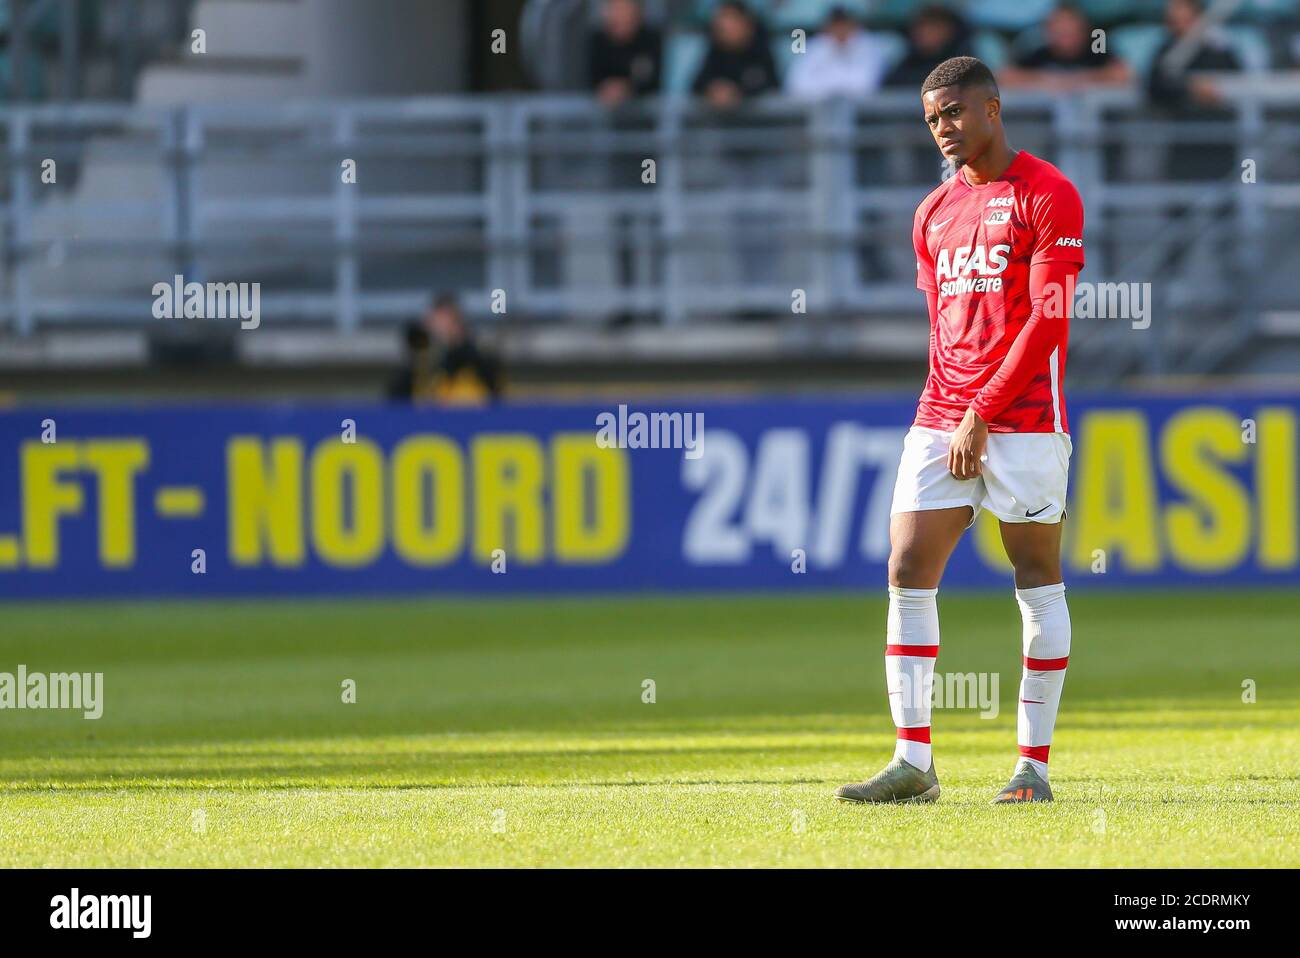 Rotterdam 29 8 20 Cars Jeans Stadion Pre Season 20 21 Ado Den Haag Az Az Player Myron Boadu Credit Pro Shots Alamy Live News Stock Photo Alamy